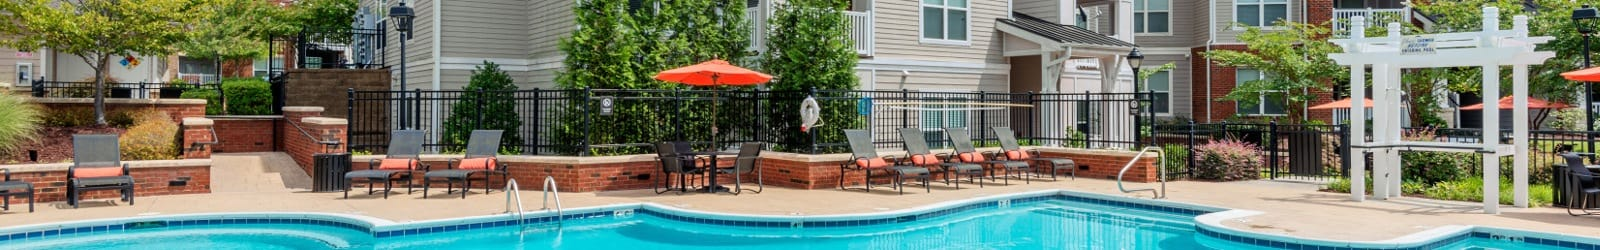 Request information about our Morrisville apartments